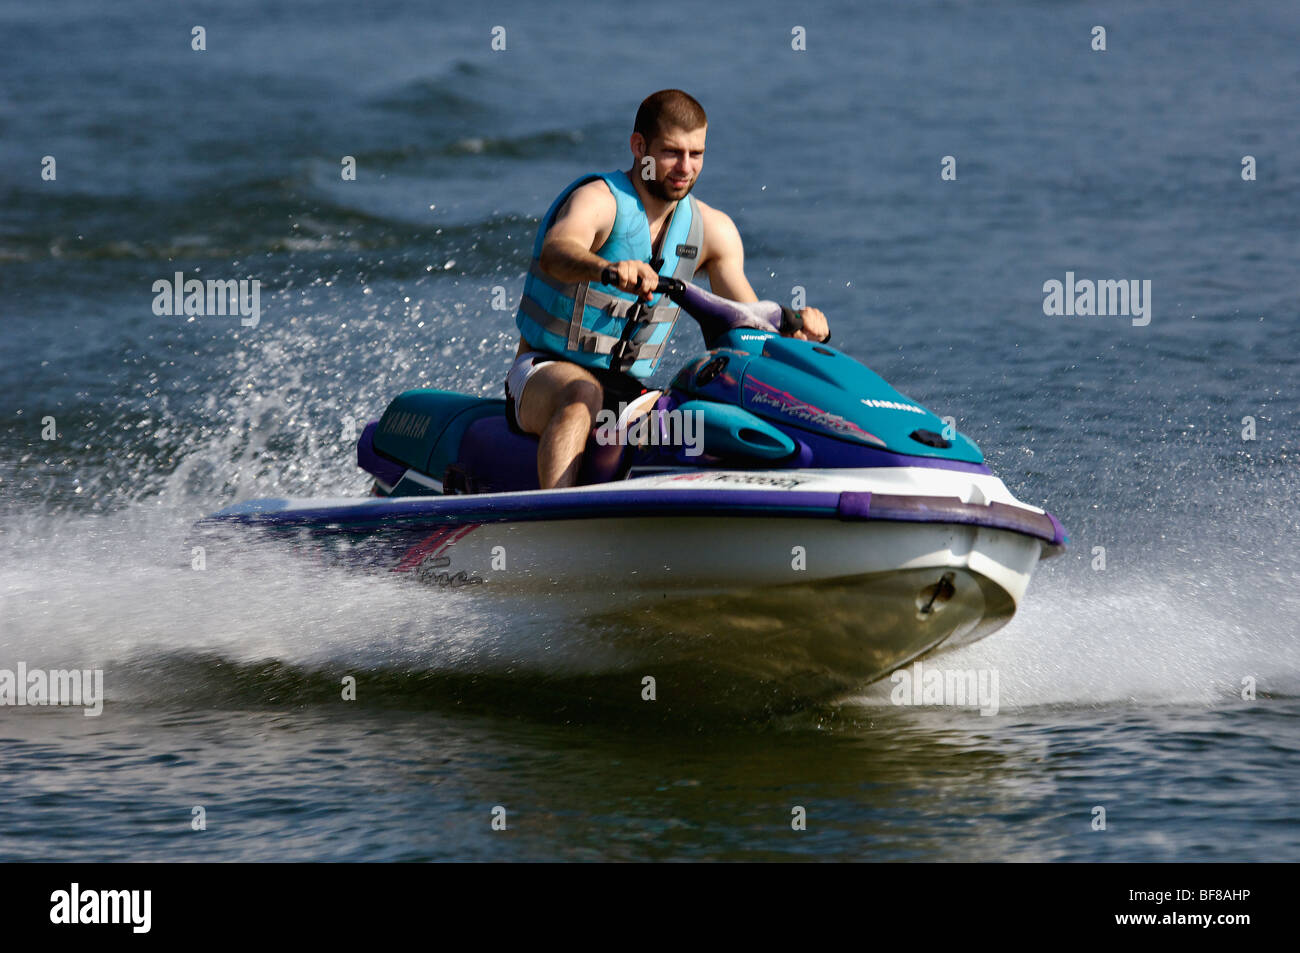 Young Man Riding Jet Ski on Watts Bar Lake in Rhea County, Tennessee - Stock Image